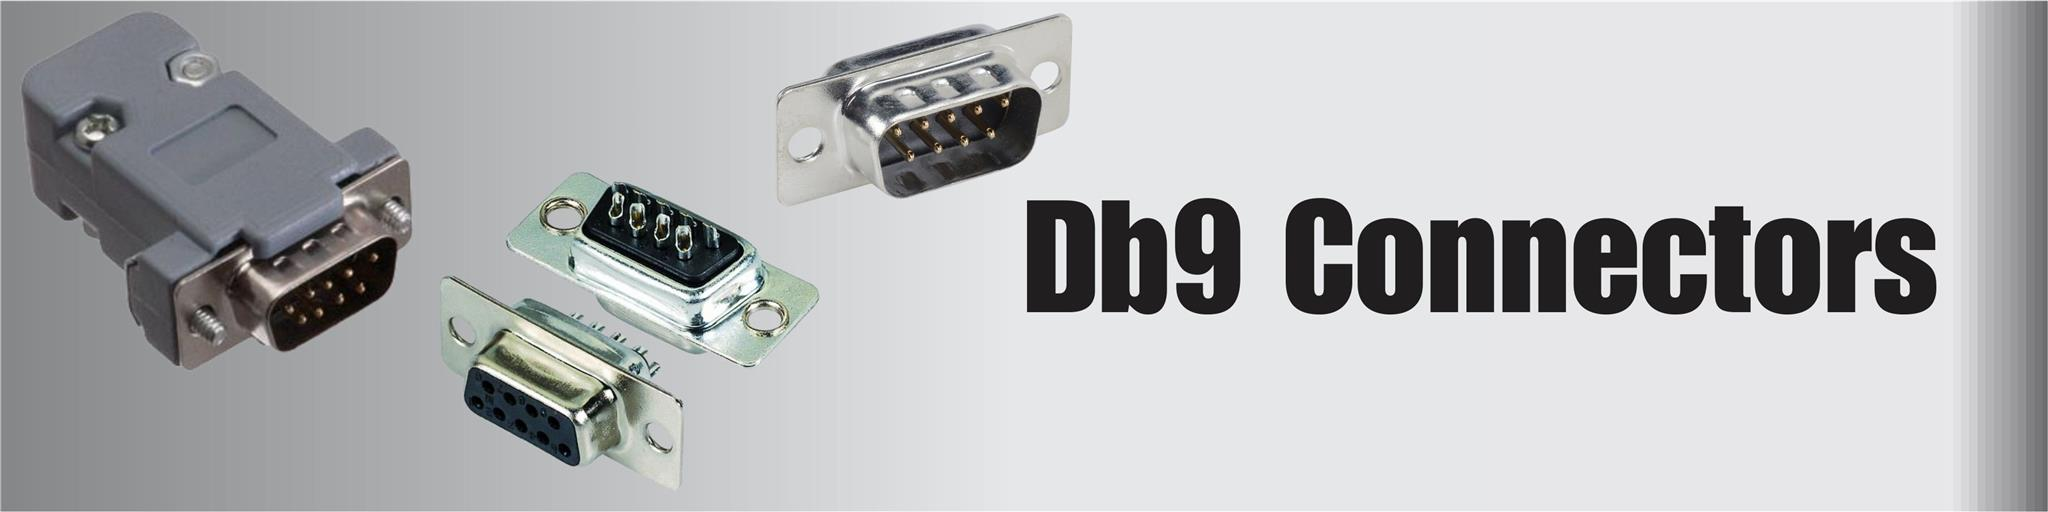 DB9 Connector Banner.jpg